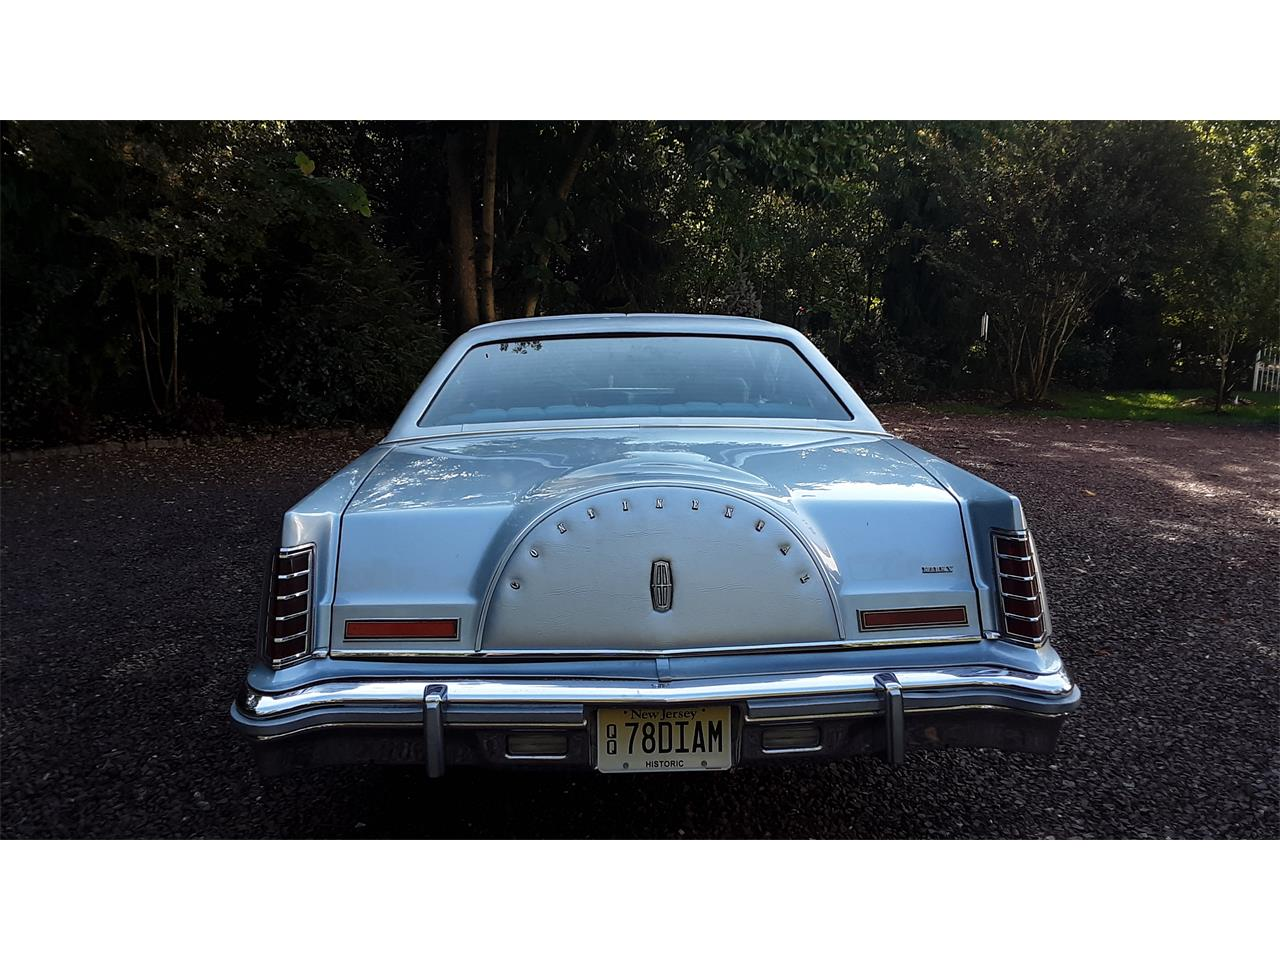 1978 Lincoln Continental Mark V (CC-1411341) for sale in Shamong, New Jersey